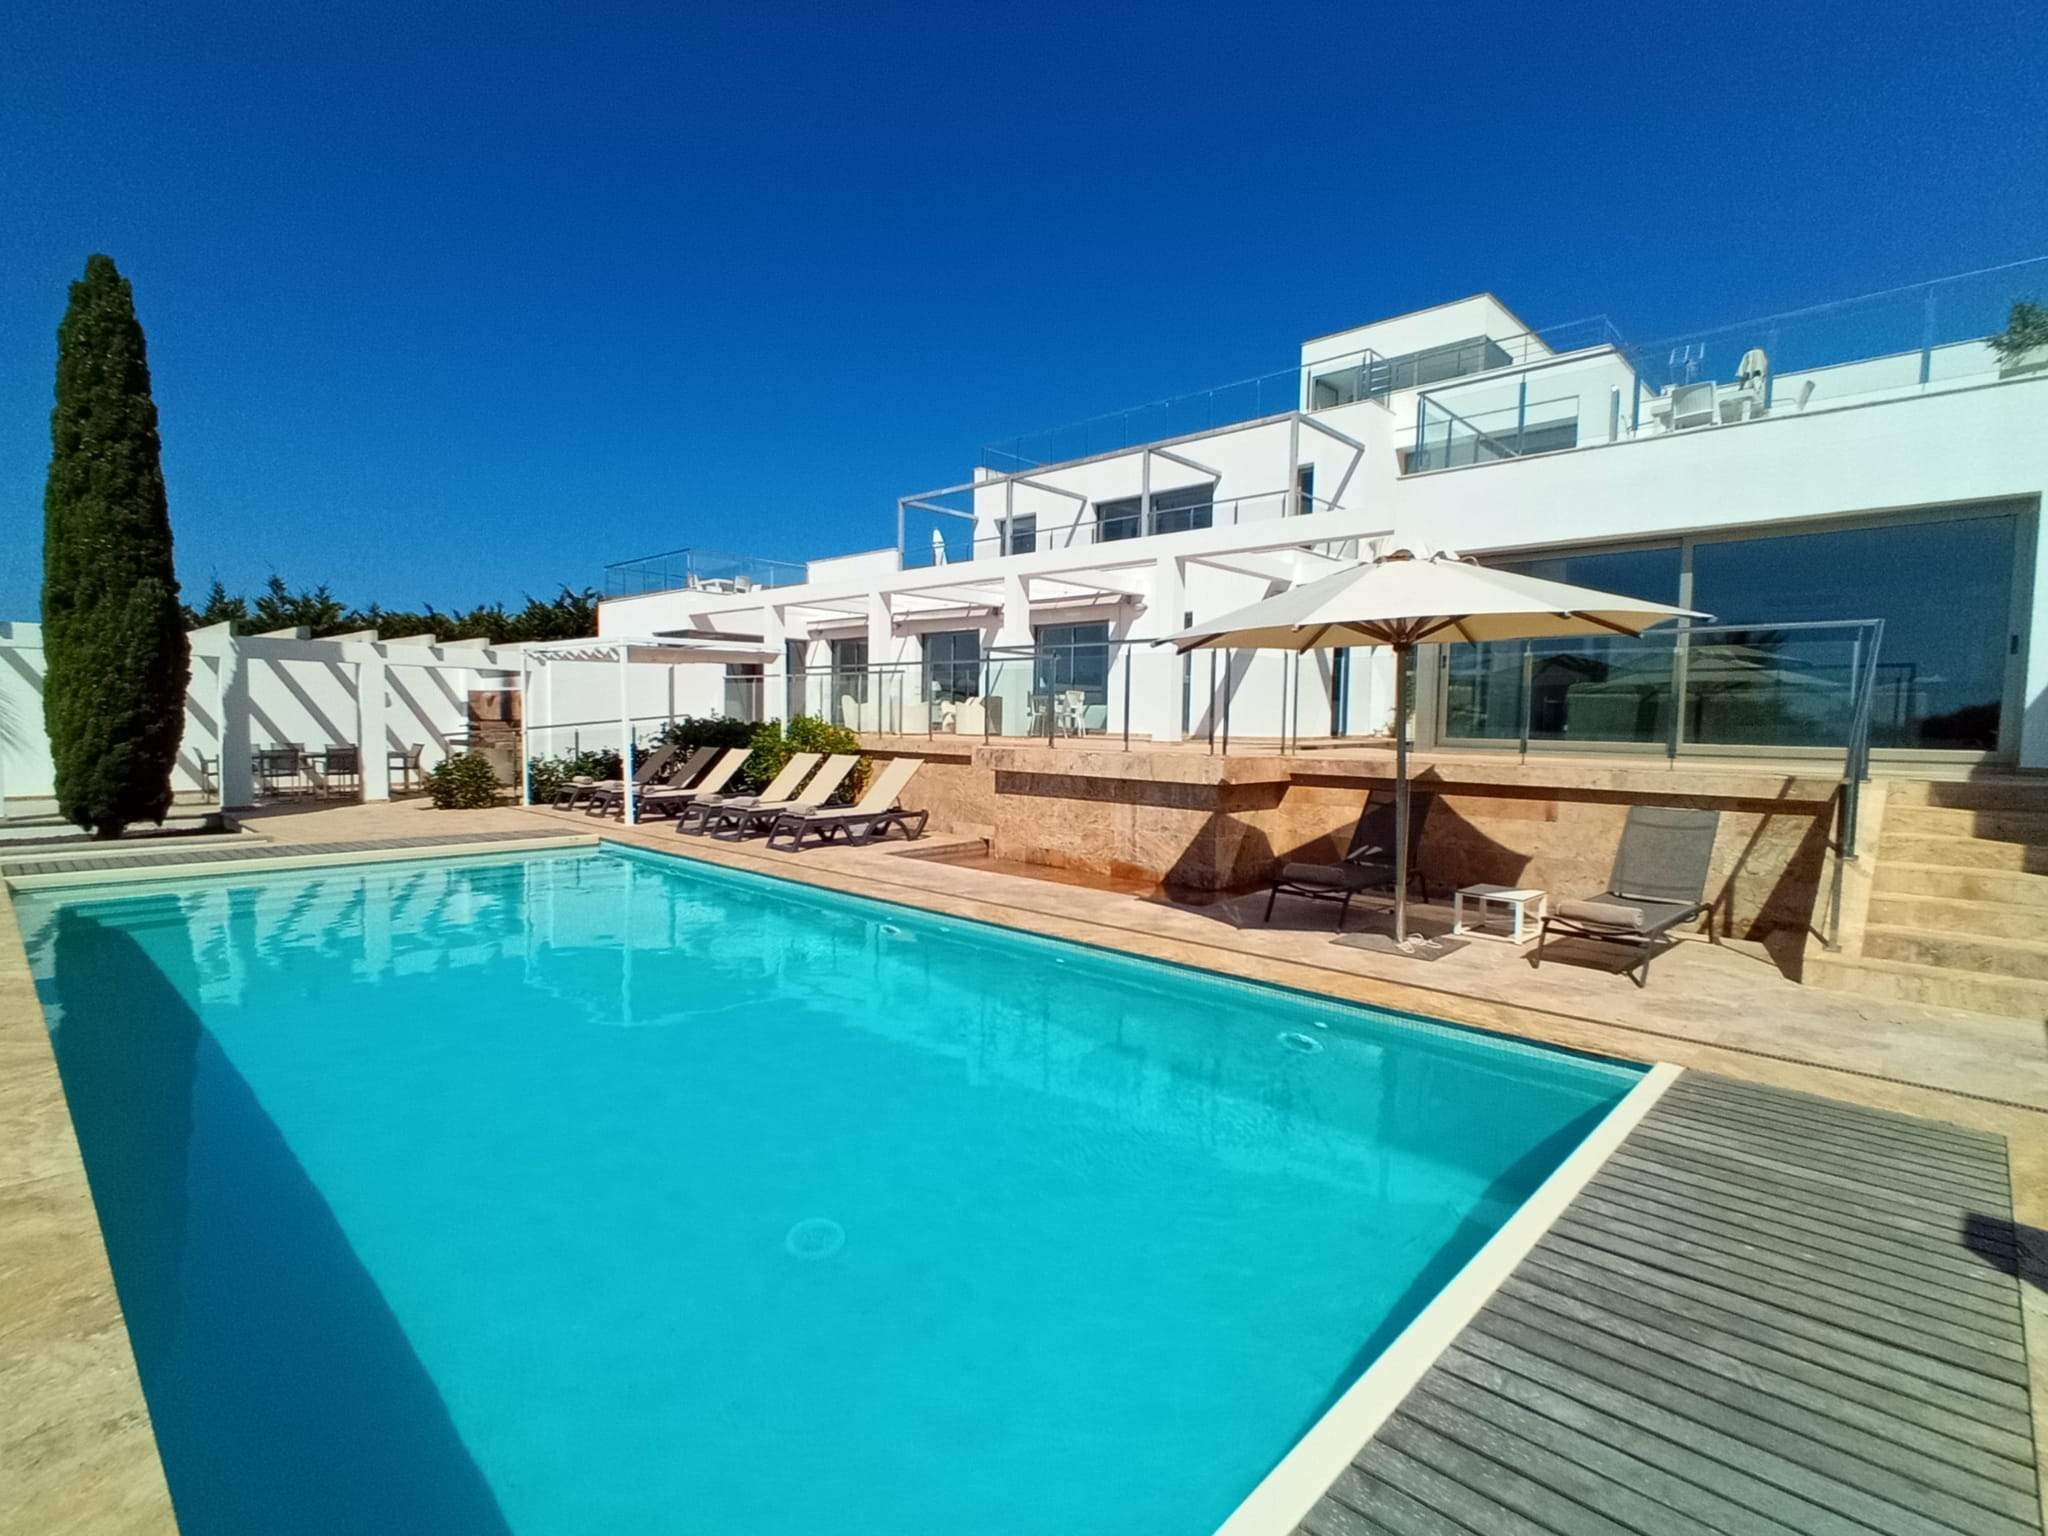 Casa Pitiusa, 5 Bedroom rate, 5 bedroom villa in Mahon, San Luis & South East, Menorca